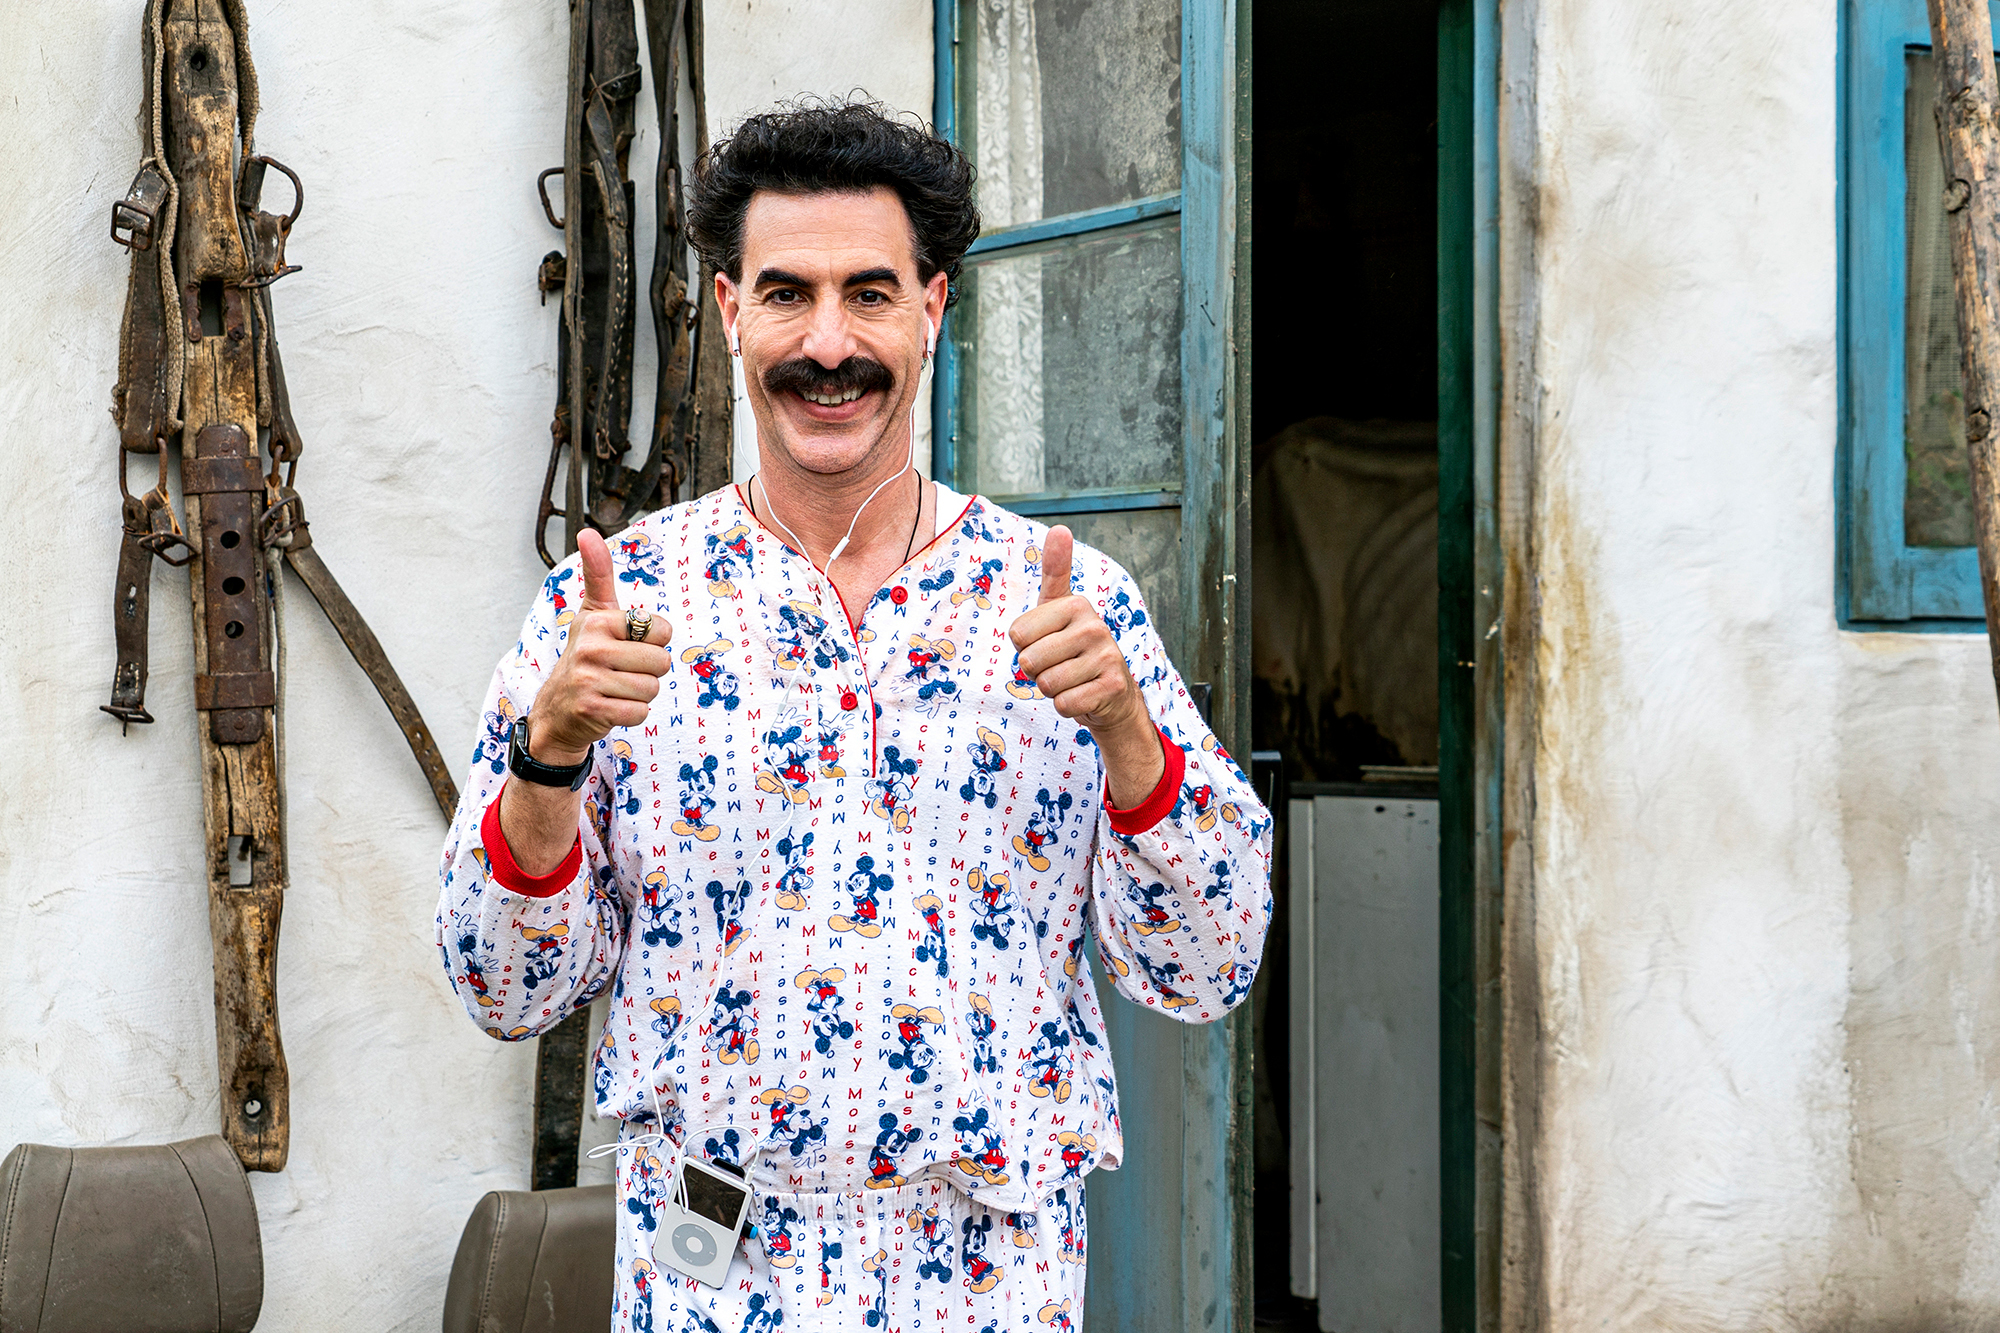 Kazakhstan adopts Borat's 'very nice' phrase in tourism push